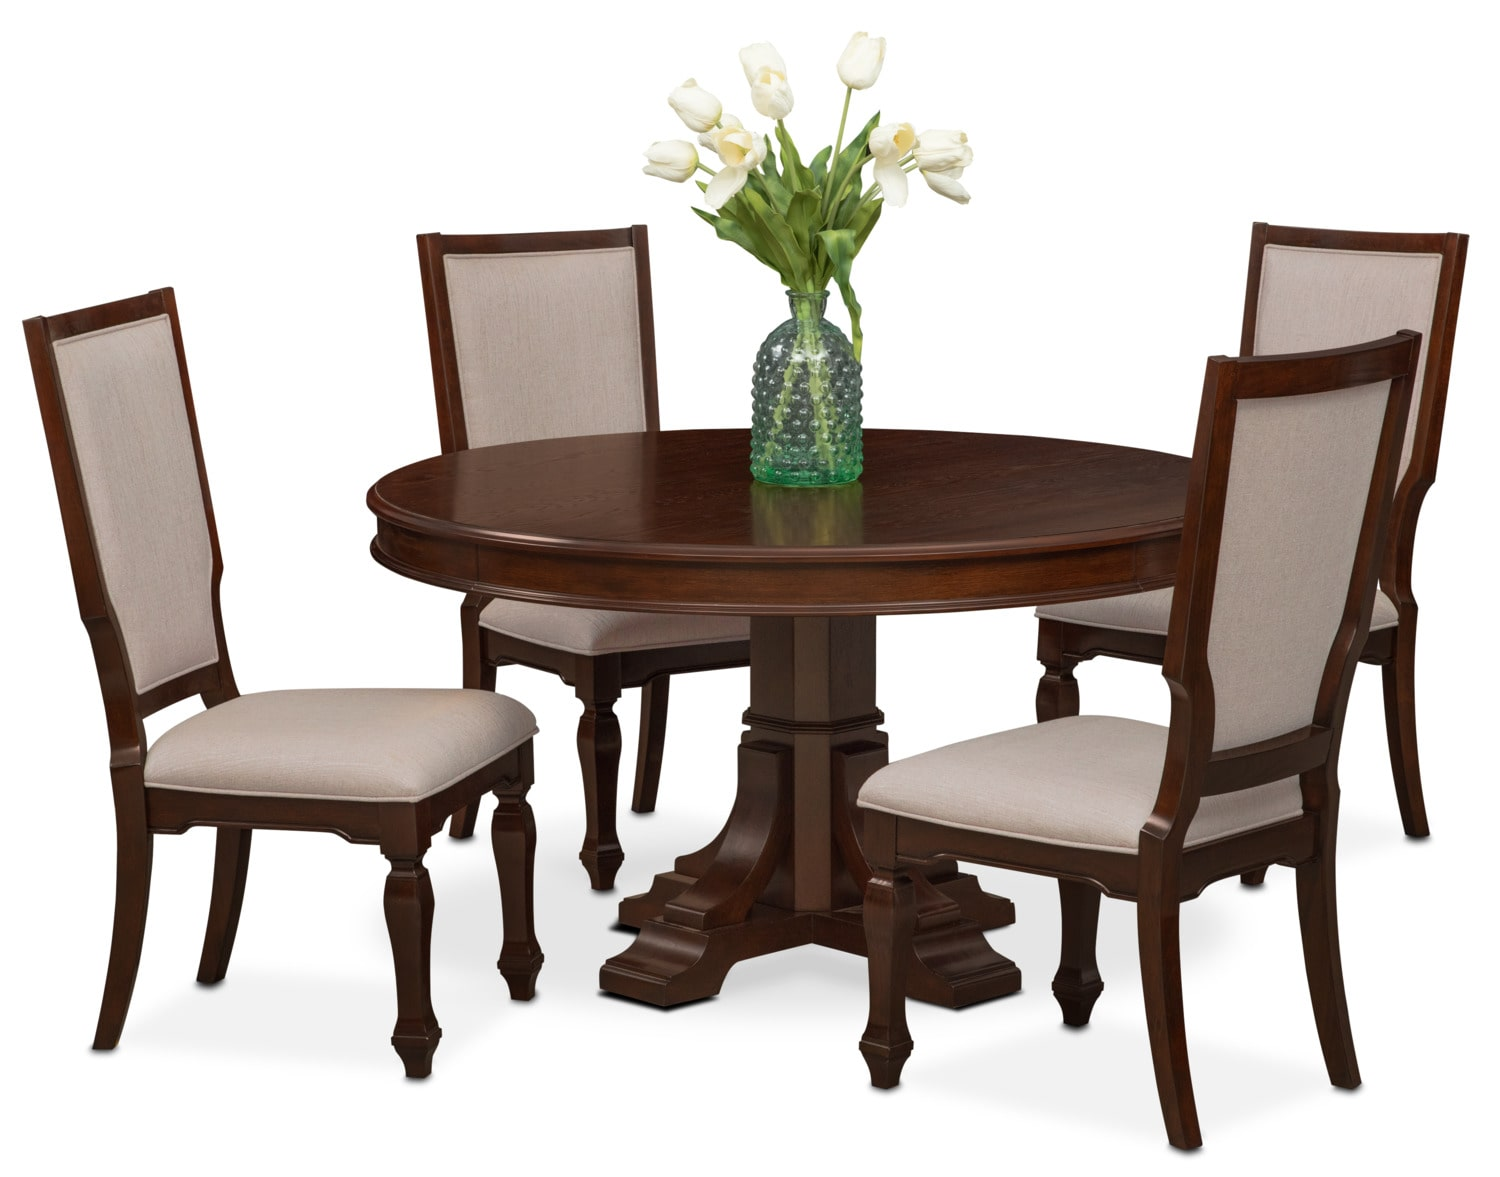 Shop Dining Room Furniture | Value City Furniture | Value City ...